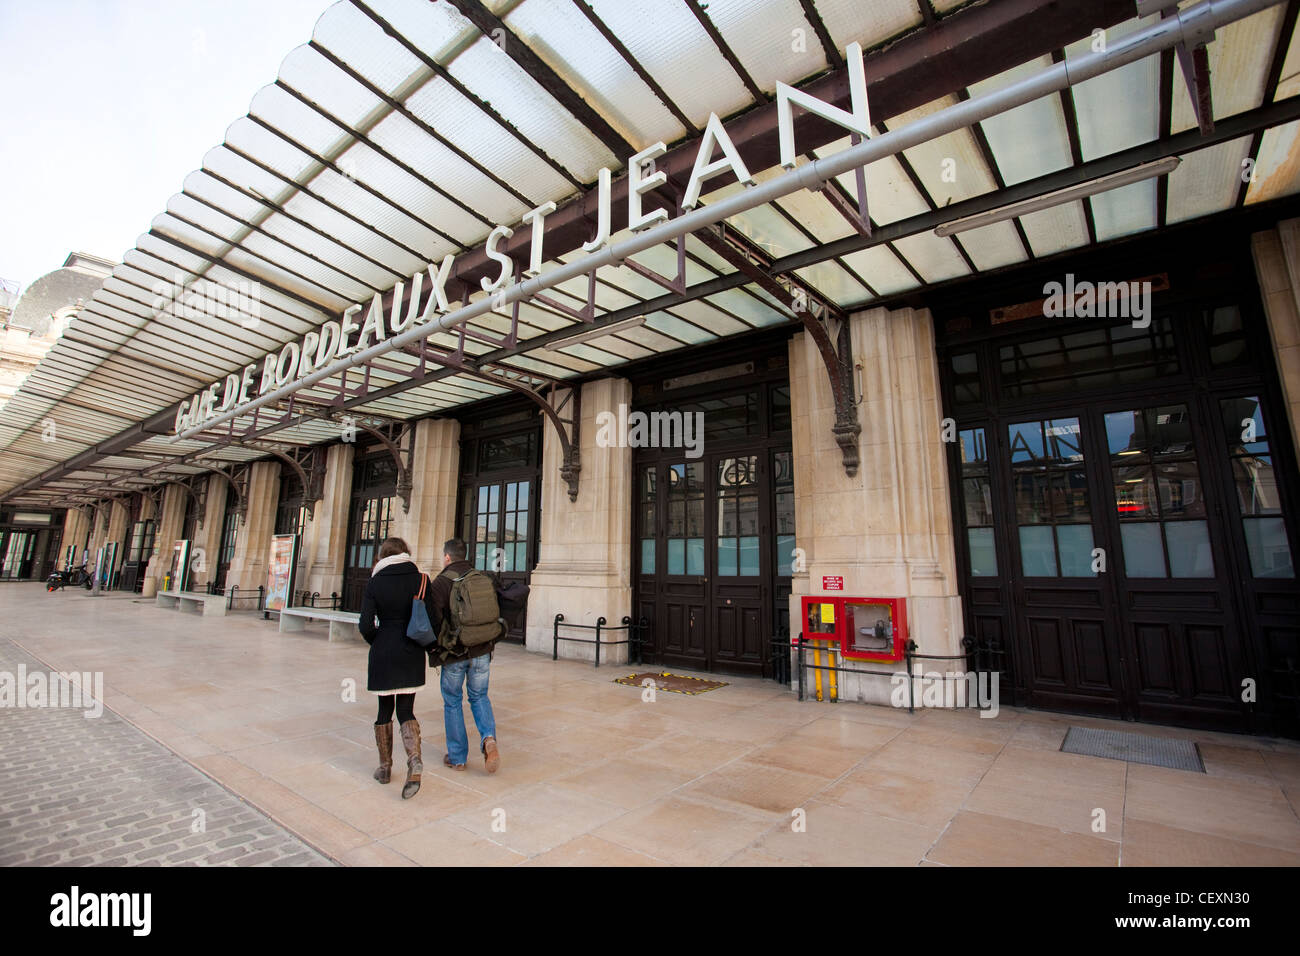 gare de bordeaux st jean railway station bordeaux france. Black Bedroom Furniture Sets. Home Design Ideas